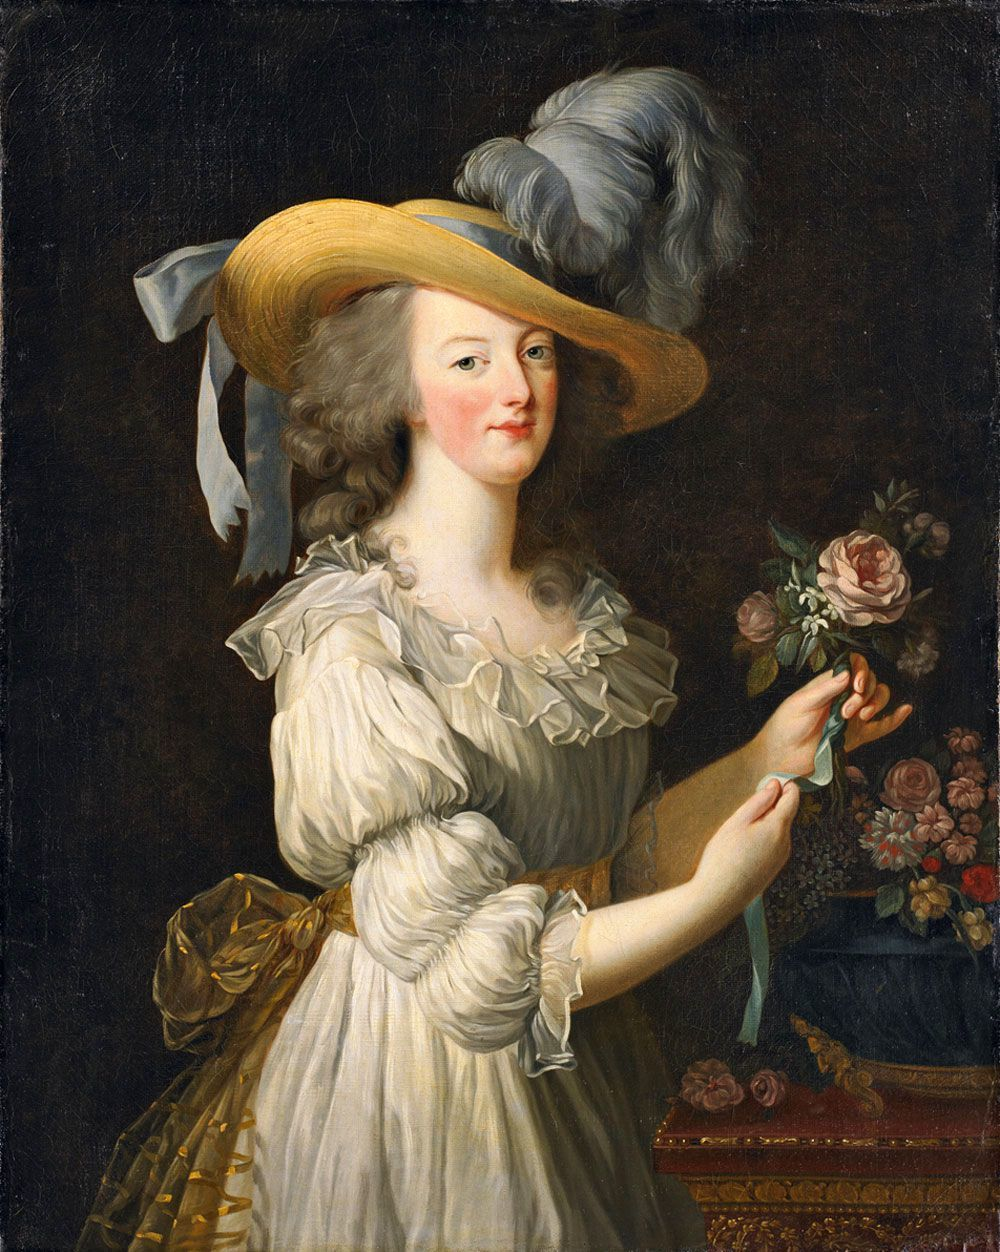 Élisabeth Vigée Le Brun, 'Marie Antoinette en chemise', 1783, oil on canvas. Photo: Racked